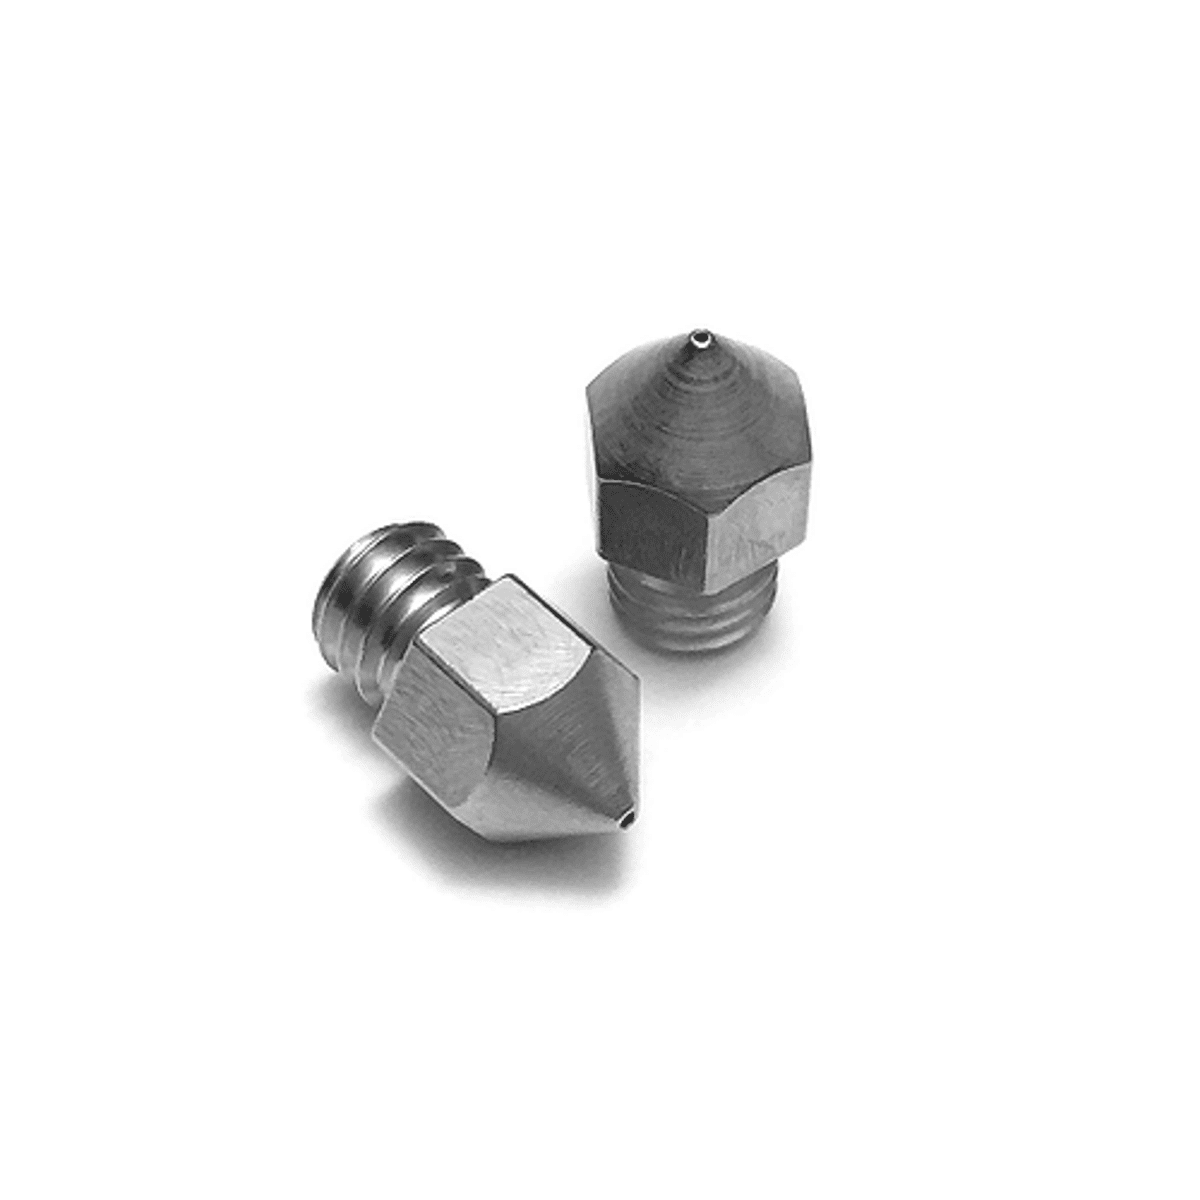 Image of Micro Swiss - MK8 Plated Wear Resistant Nozzle 0.4 mm